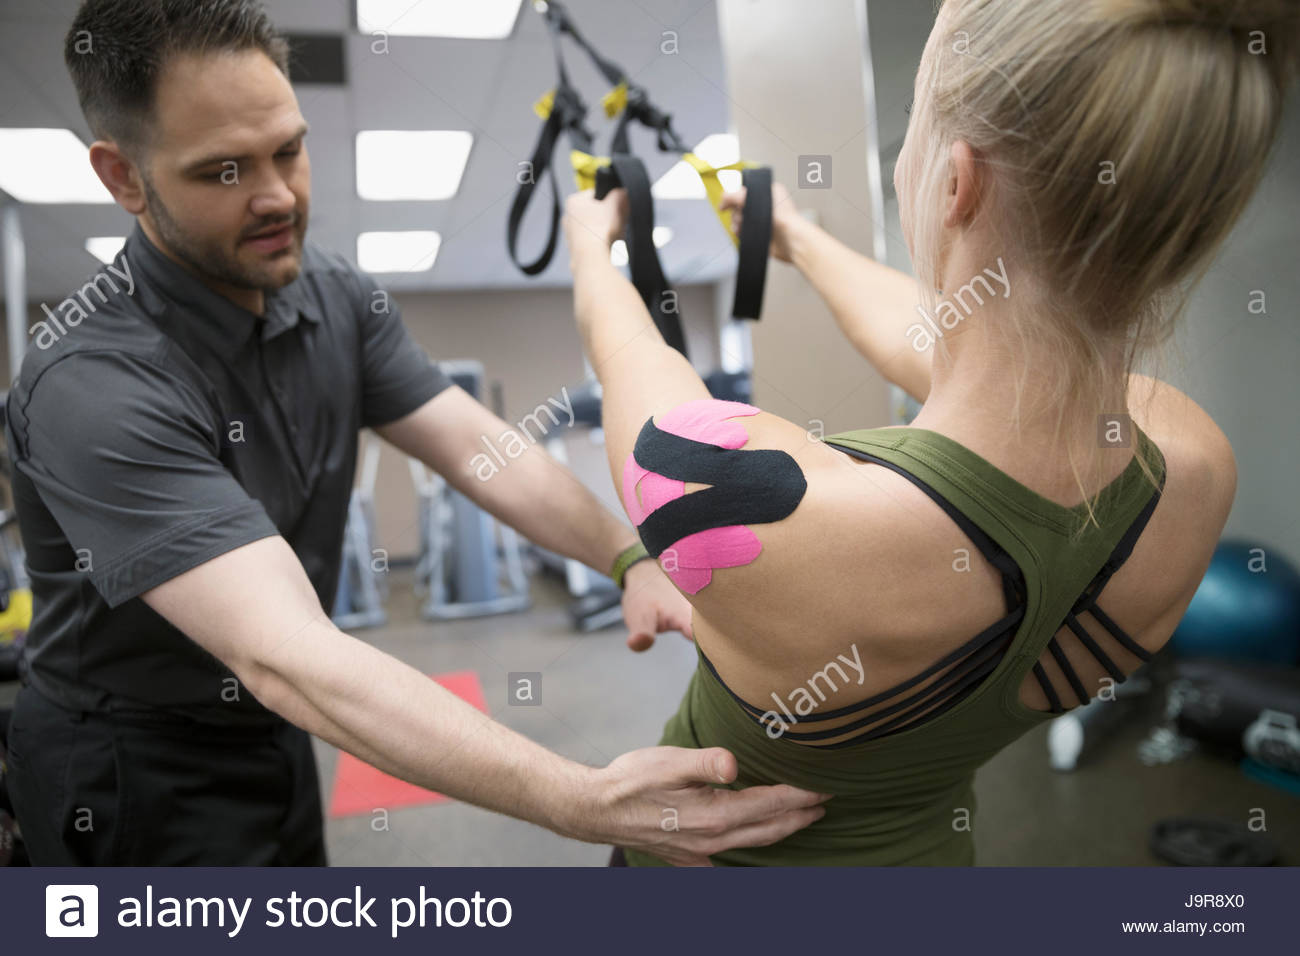 Male physiotherapist helping female client wearing elastic therapeutic tape exercising in clinic gym - Stock Image